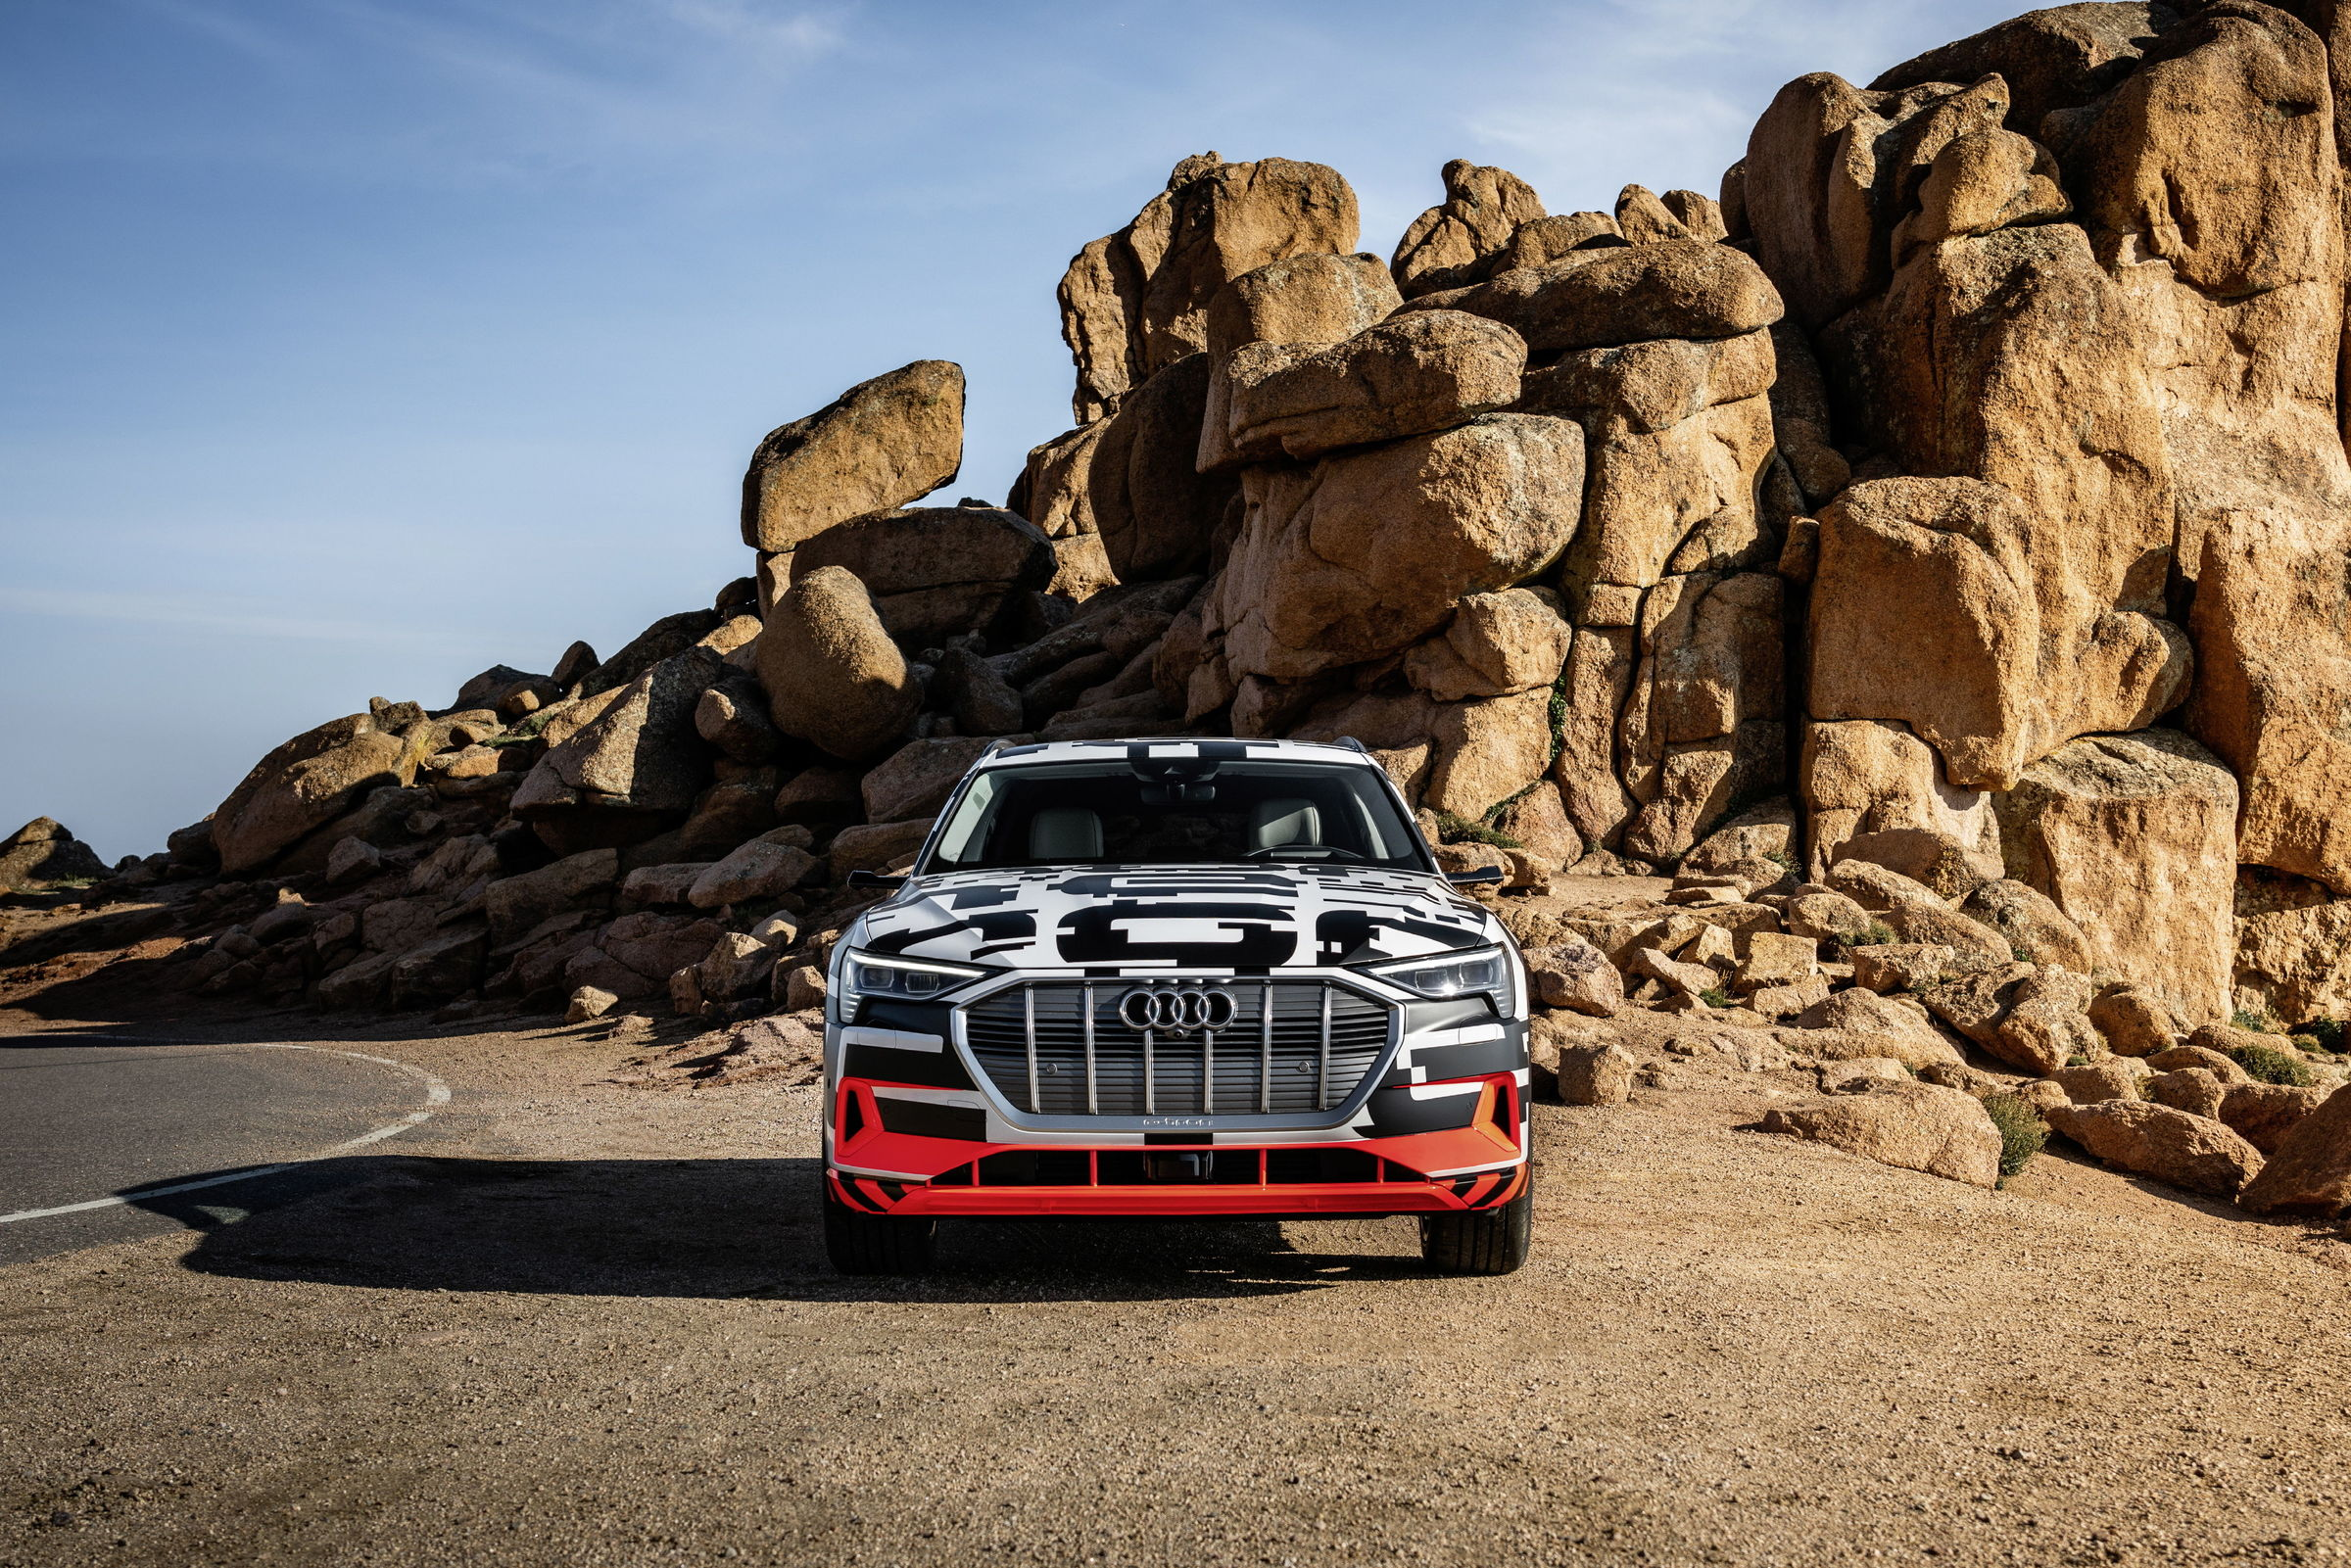 Prototype vehicle is shown throughout the article; not available for sale. Photos Courtesy of Audi USA.